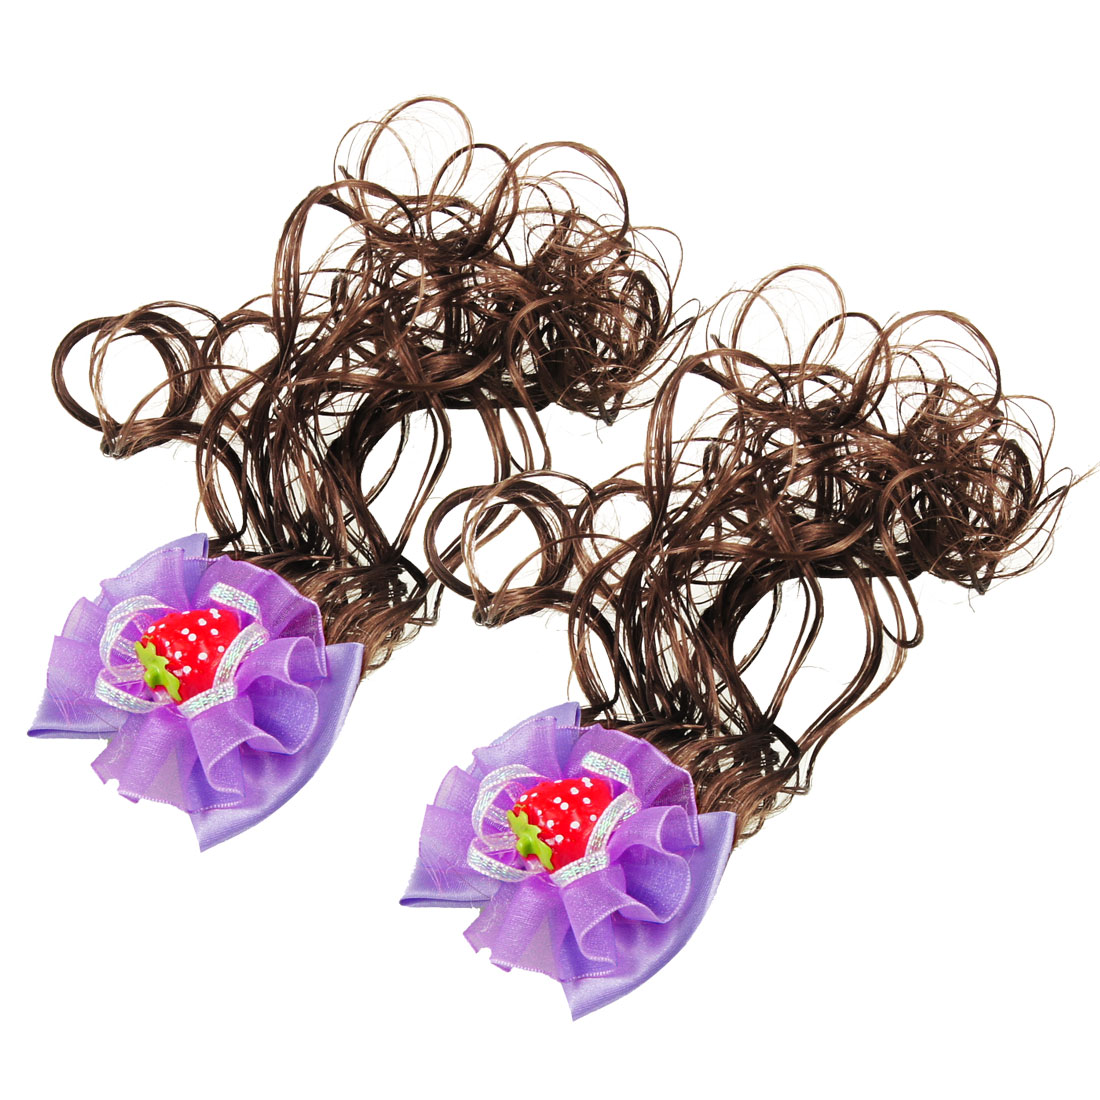 Headdress Bowtie Accent Alligator Clip Wig Fall Hairpieces Purple 2 Pcs for Girl